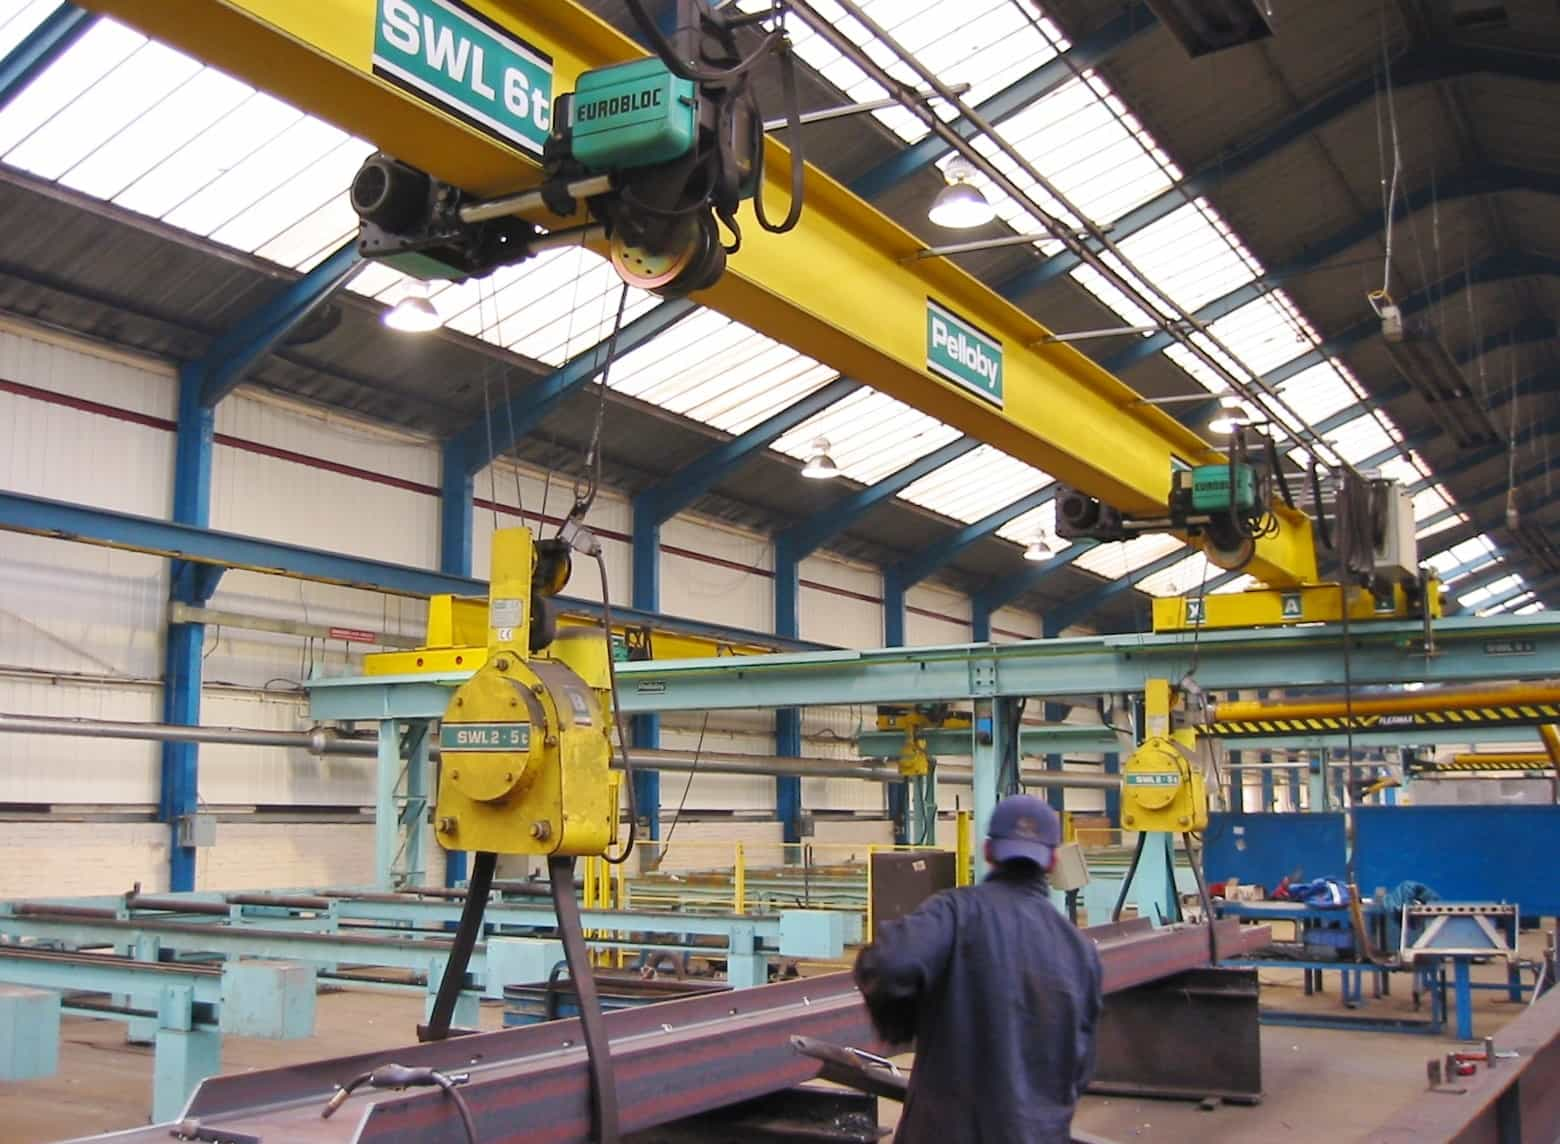 Pelloby load turning unit attached to 6 tonne overhead crane